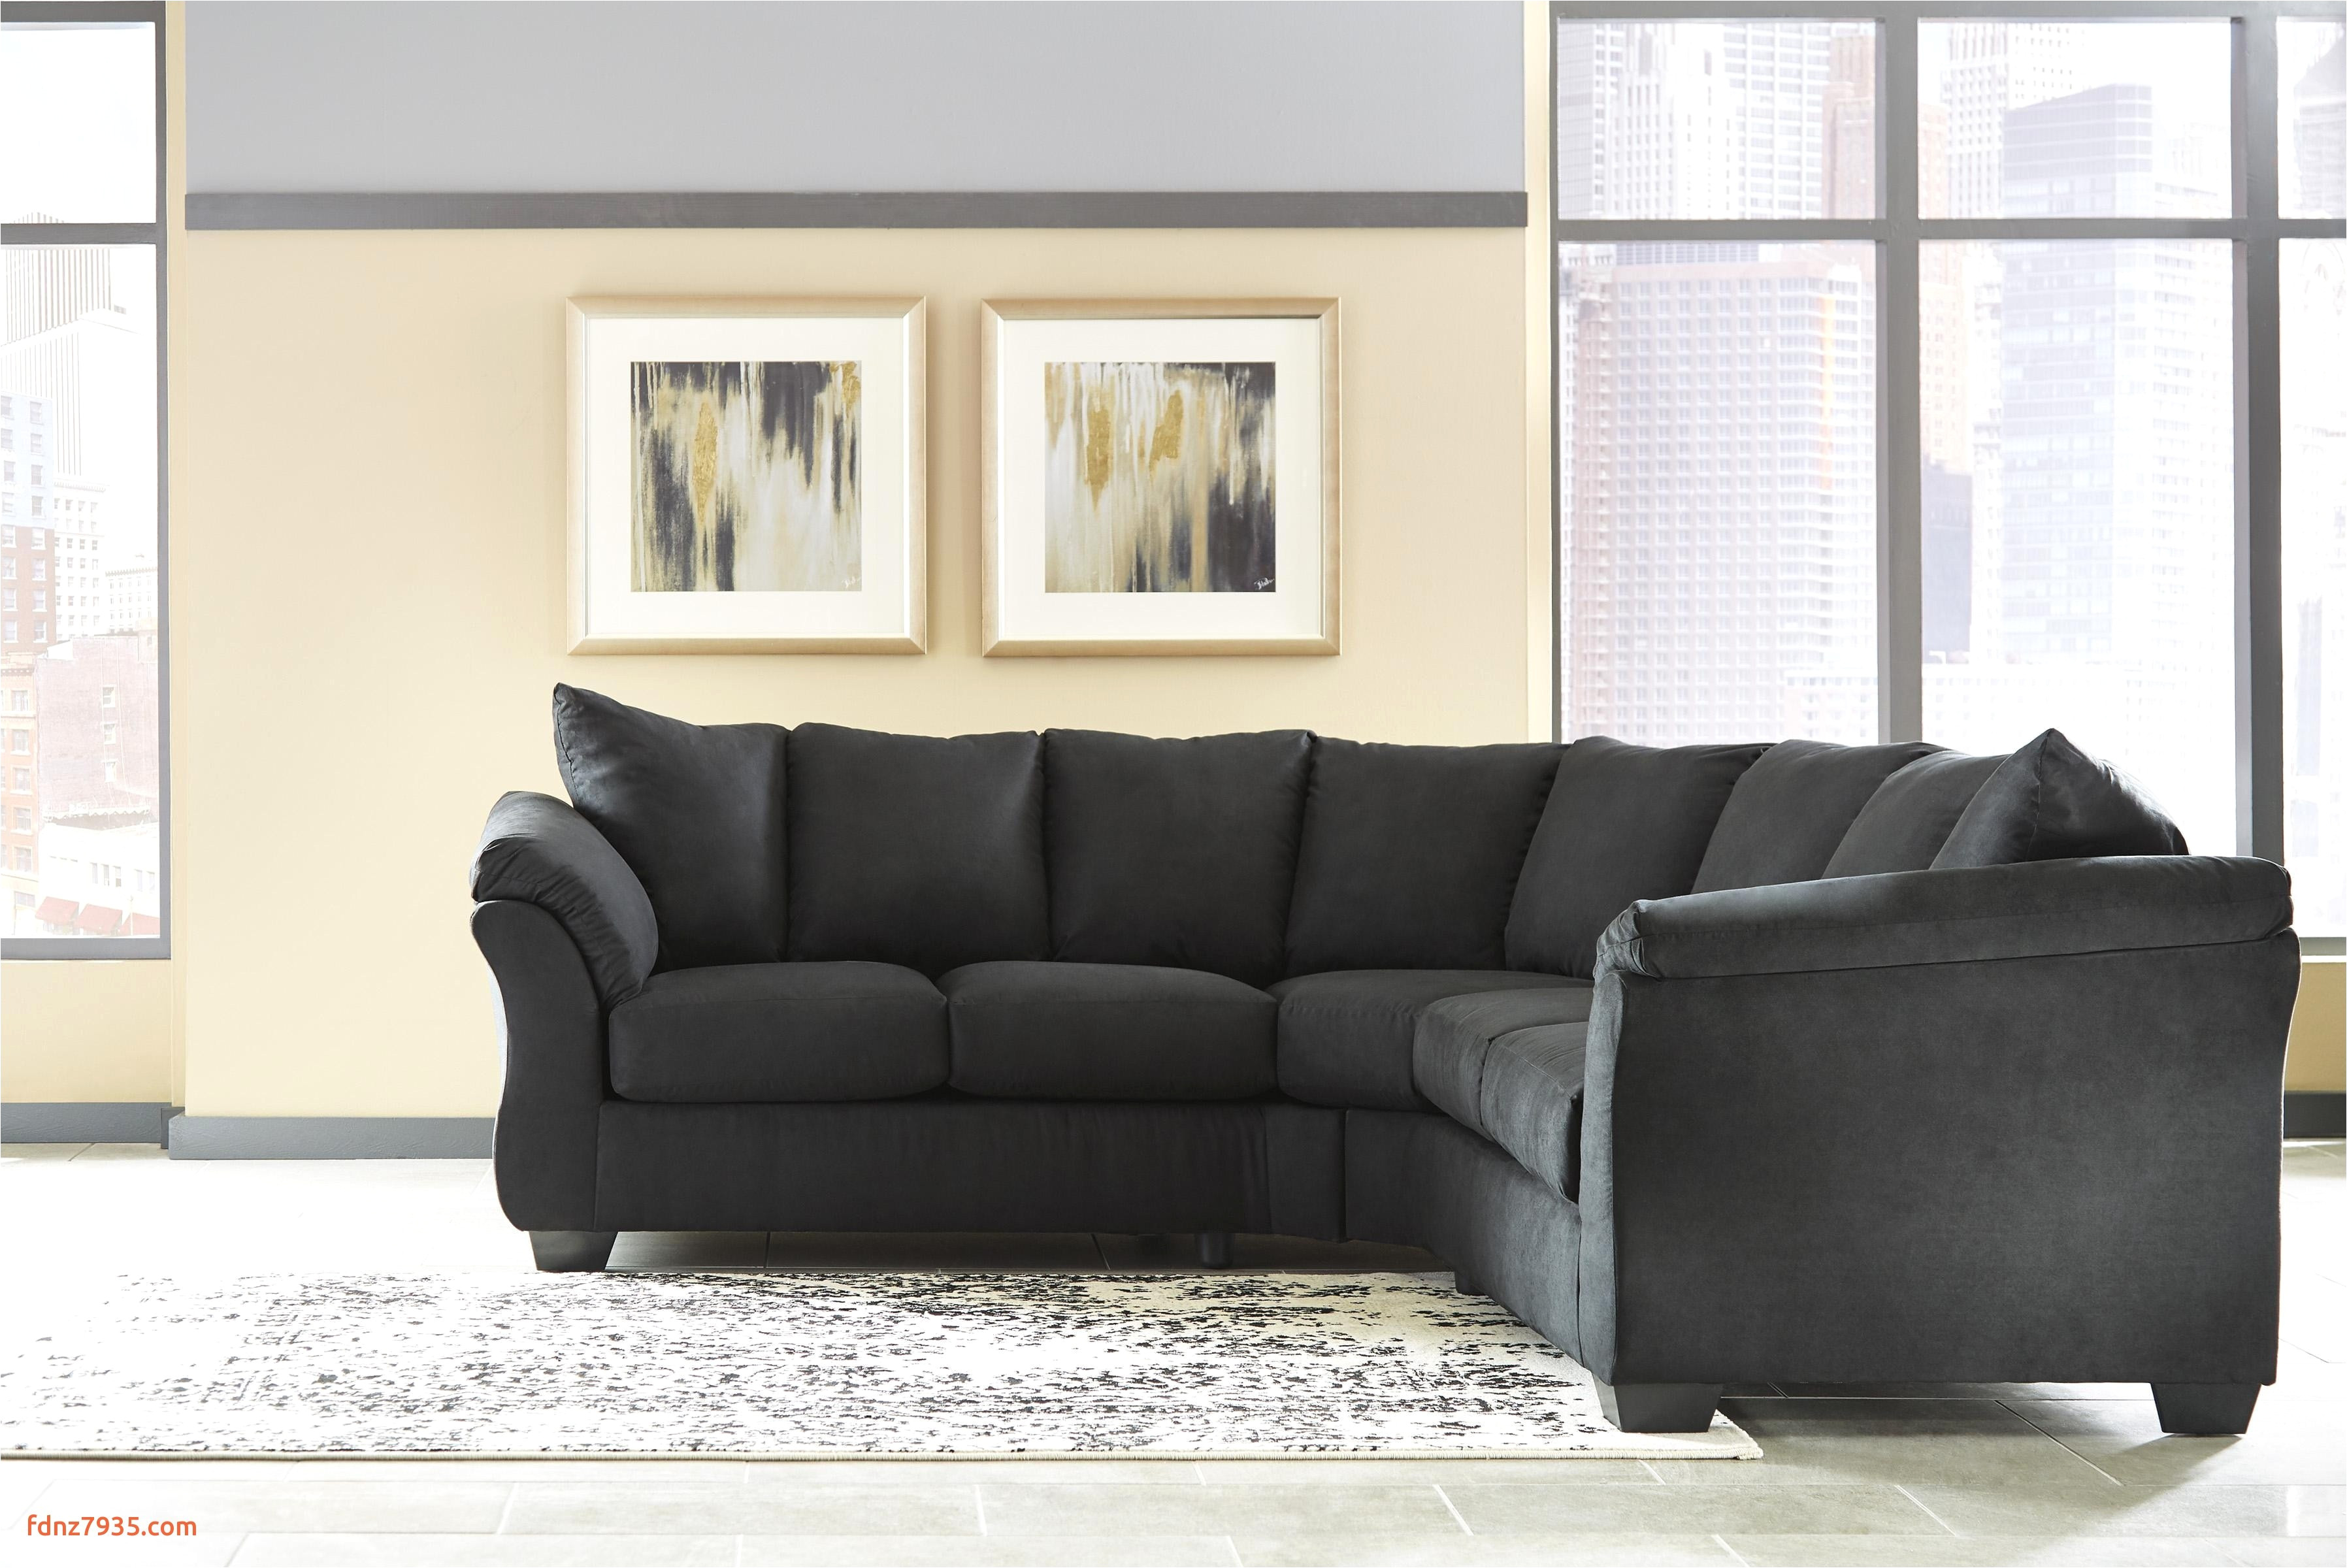 ergonomic living room chairs beautiful sectional couch 0d tags fabulous new sectional couch magnificent sectional sleeper